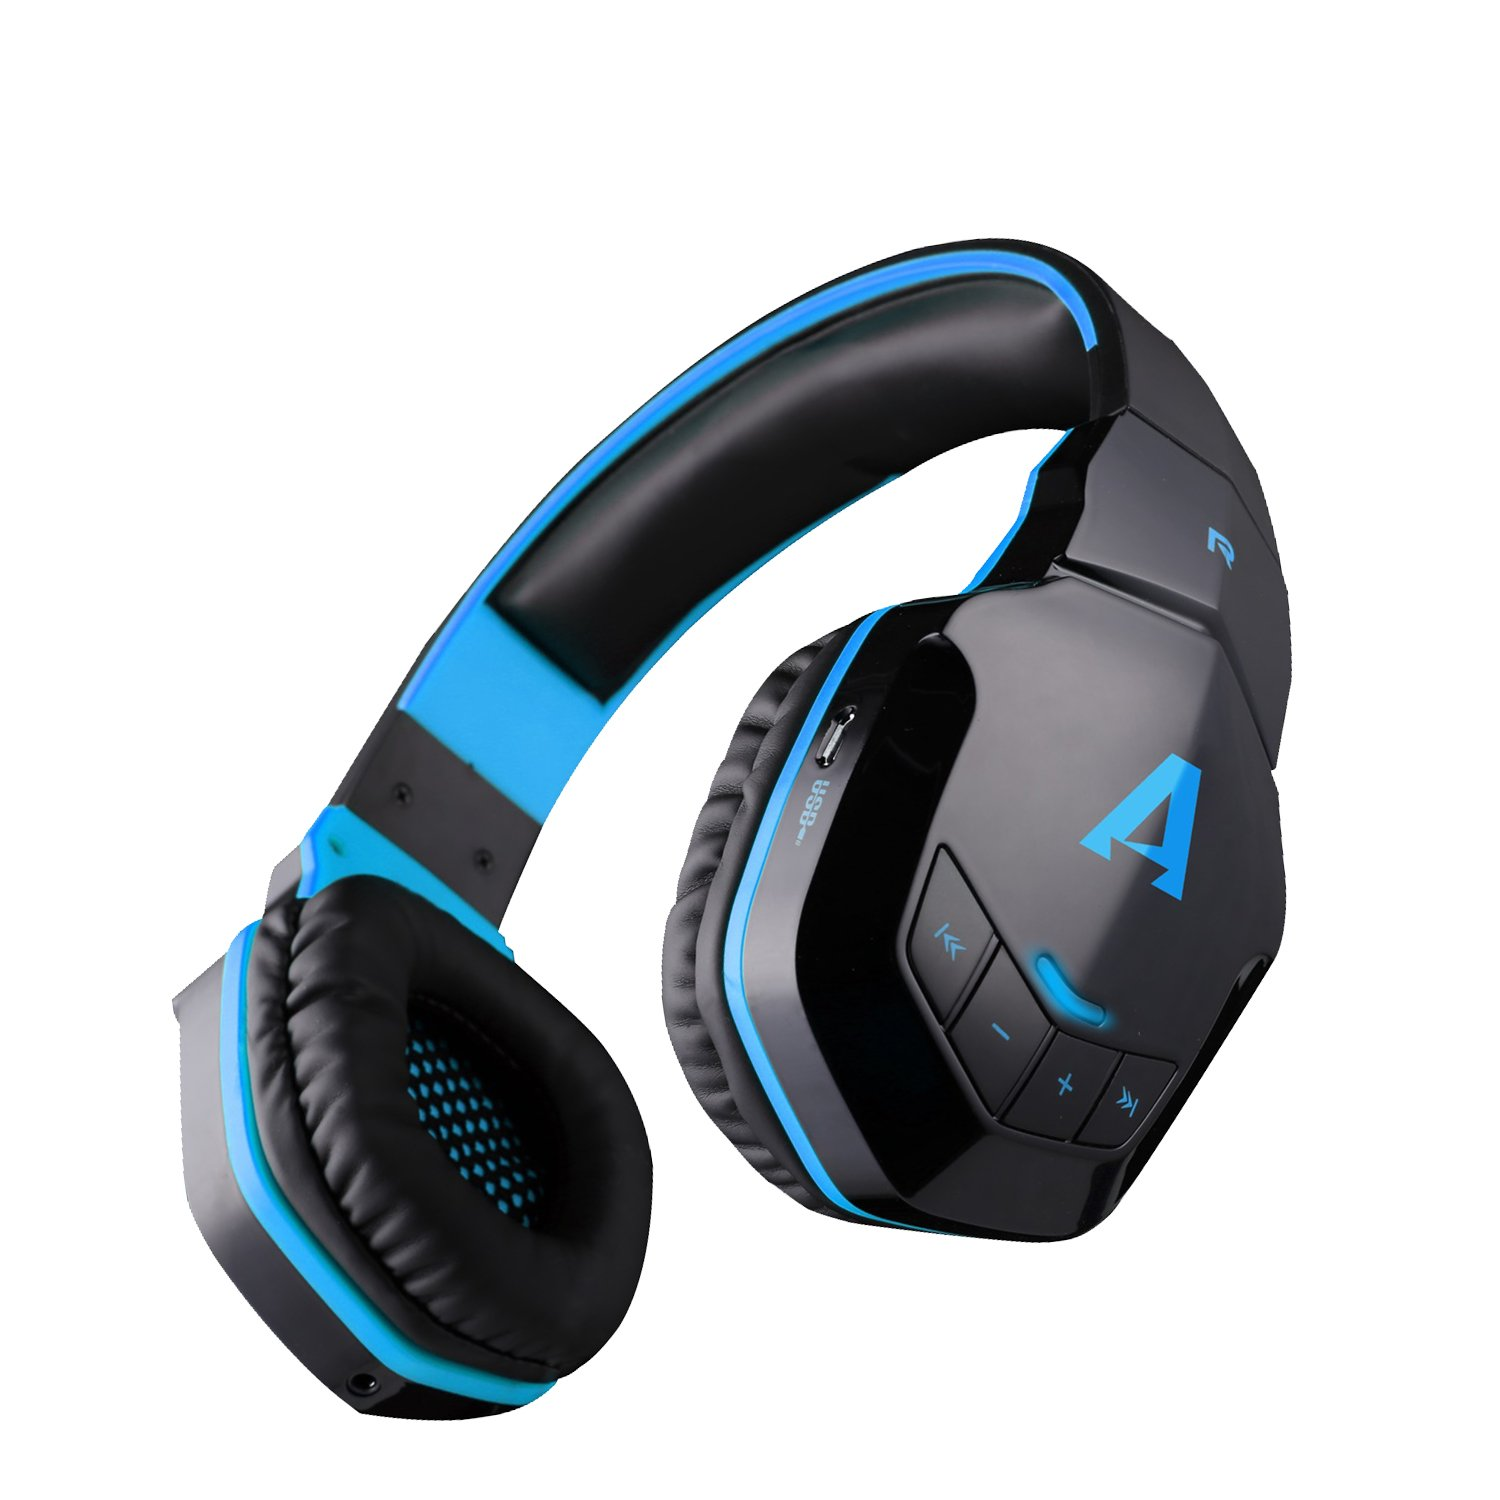 Boat Rockerz 510 Wireless Bluetooth Headphones